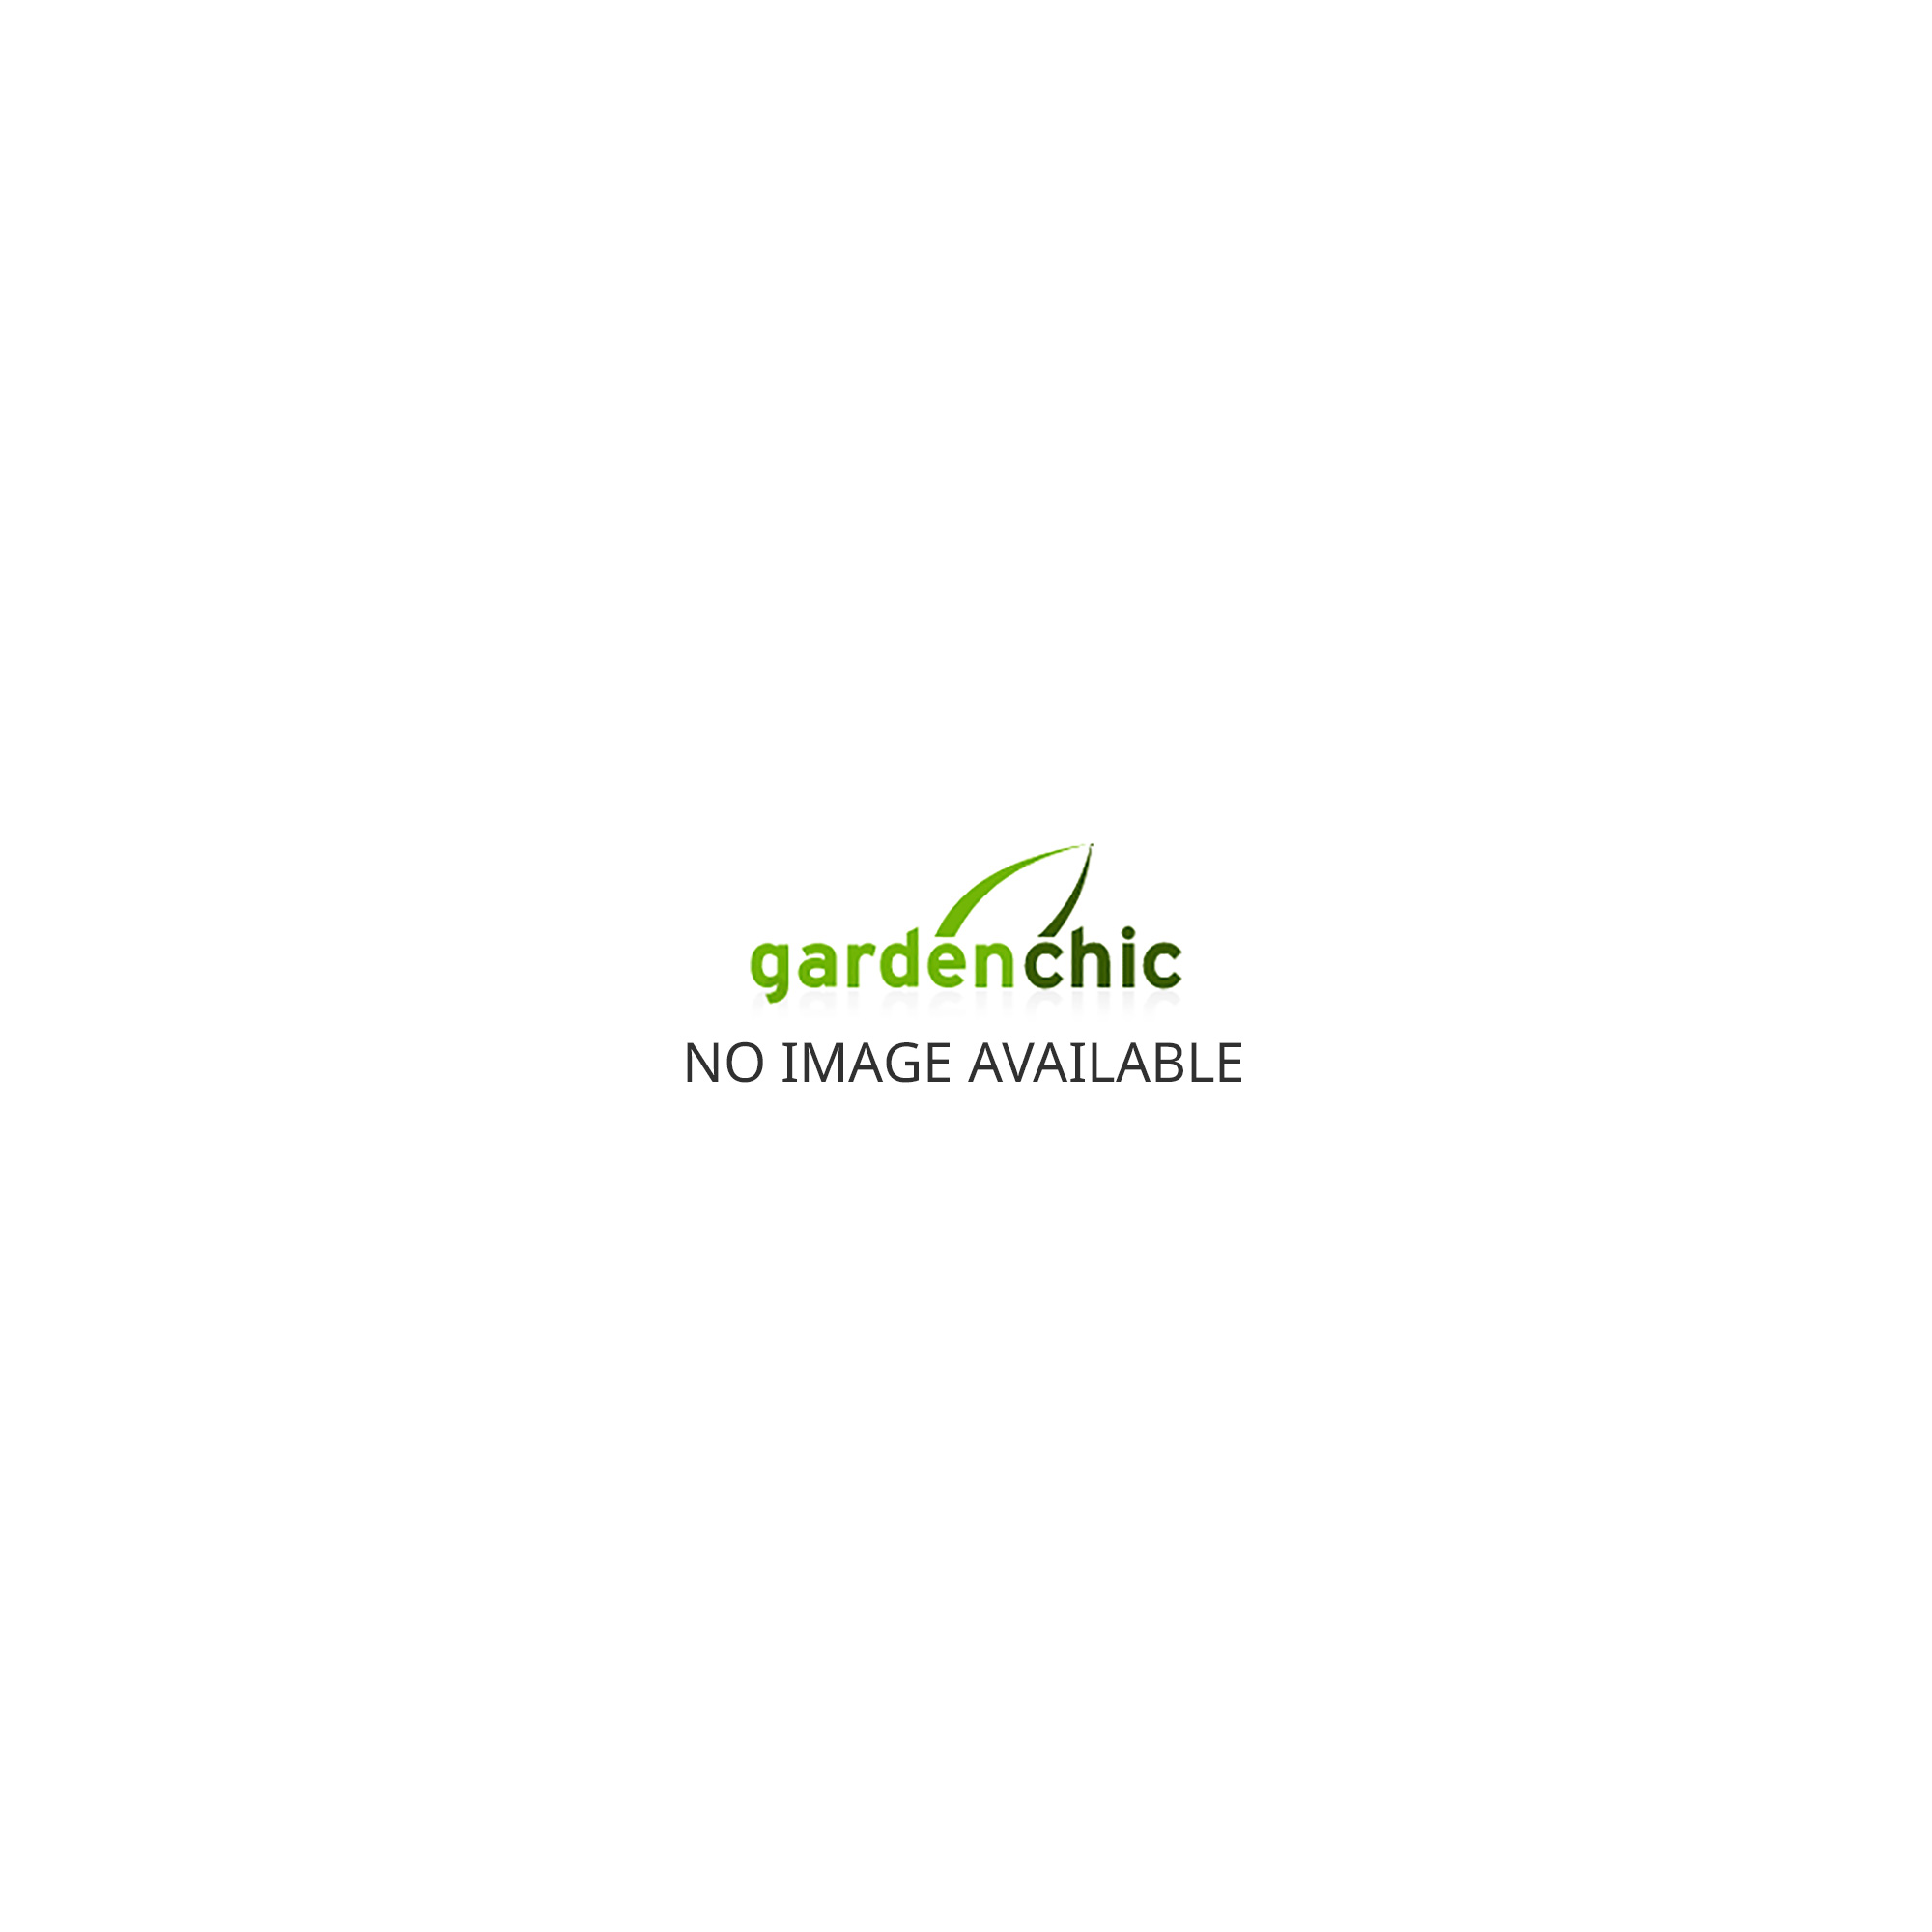 Bourton 10 x 12 Greenhouse (Aluminium) FREE Waterbutt, Connection Kit and Blinds until May 2018